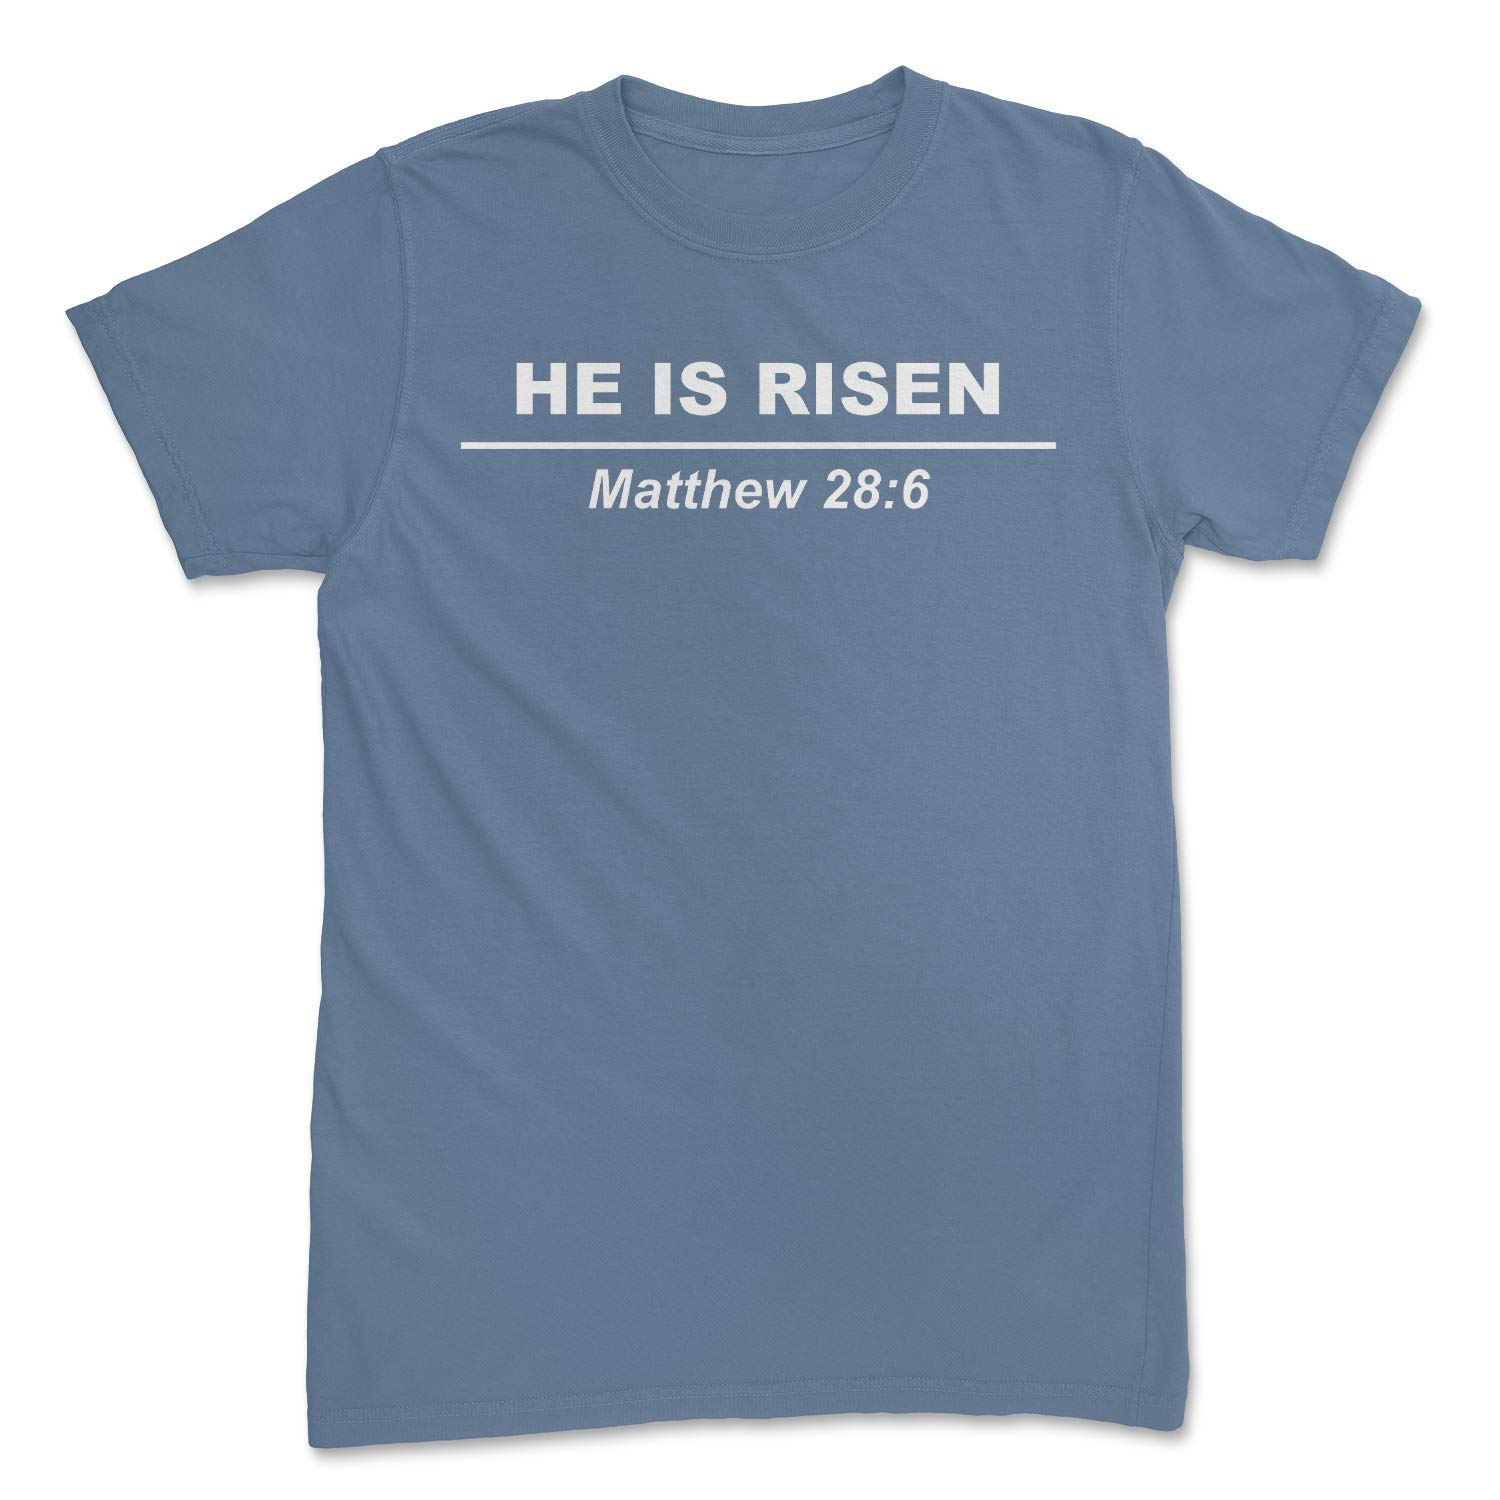 Popular brand in the world He Is Risen Max 47% OFF Kids Shirt Tee